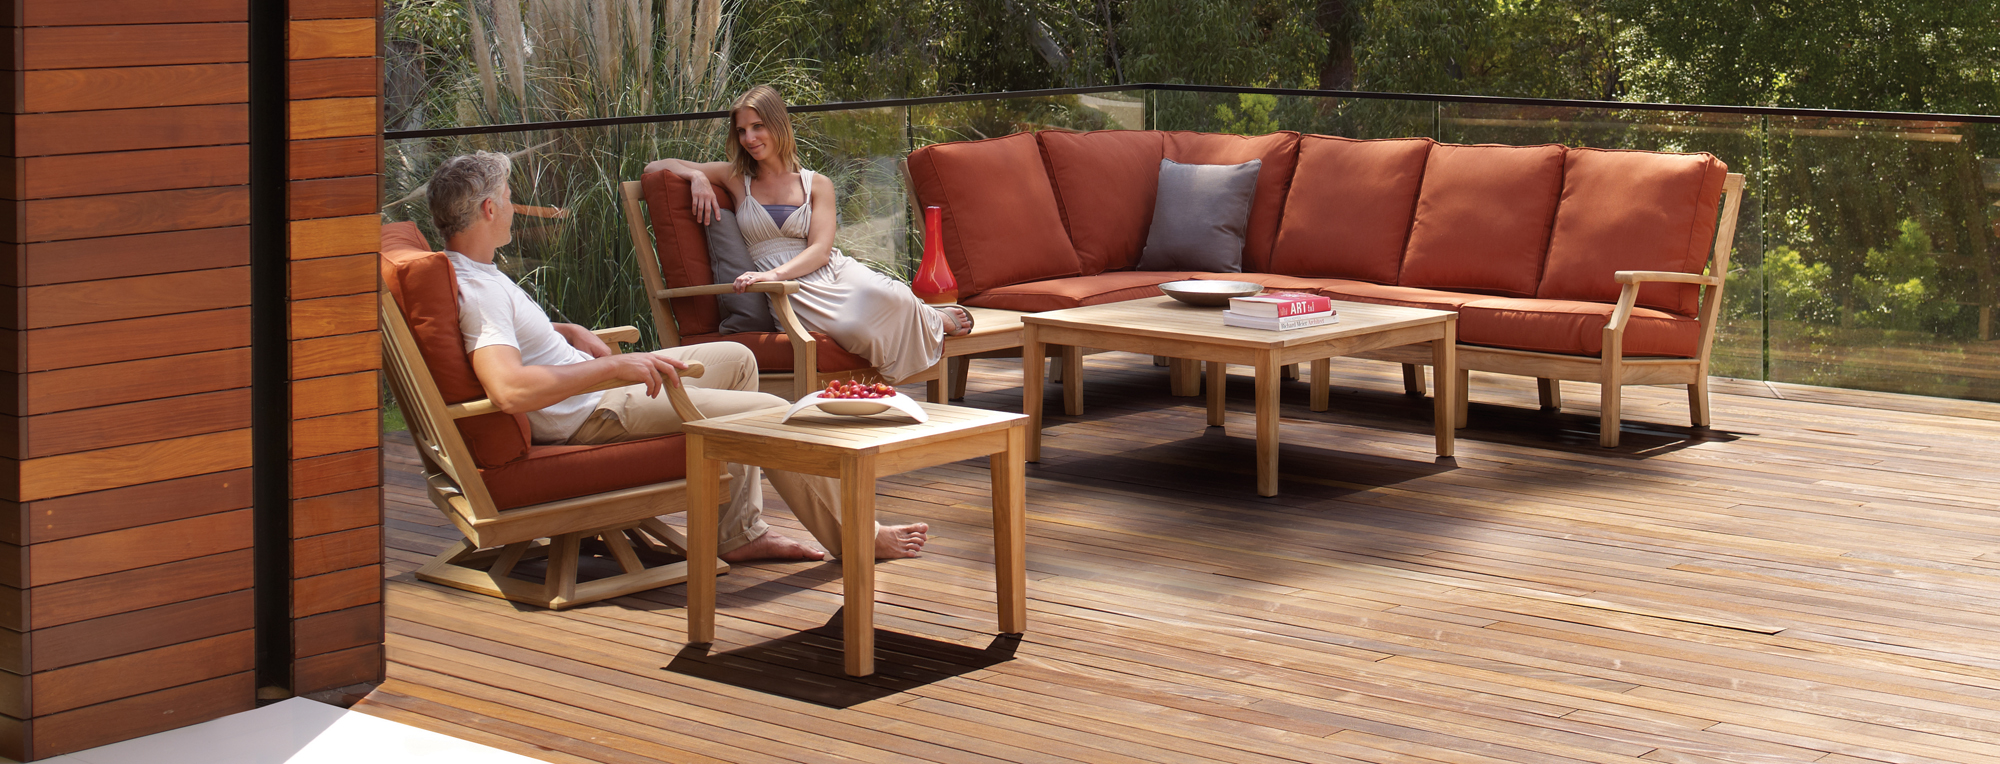 Beau Patio Furniture Los Angeles, Santa Monica, Beverly Hills U0026 Malibu | Victory  Furniture